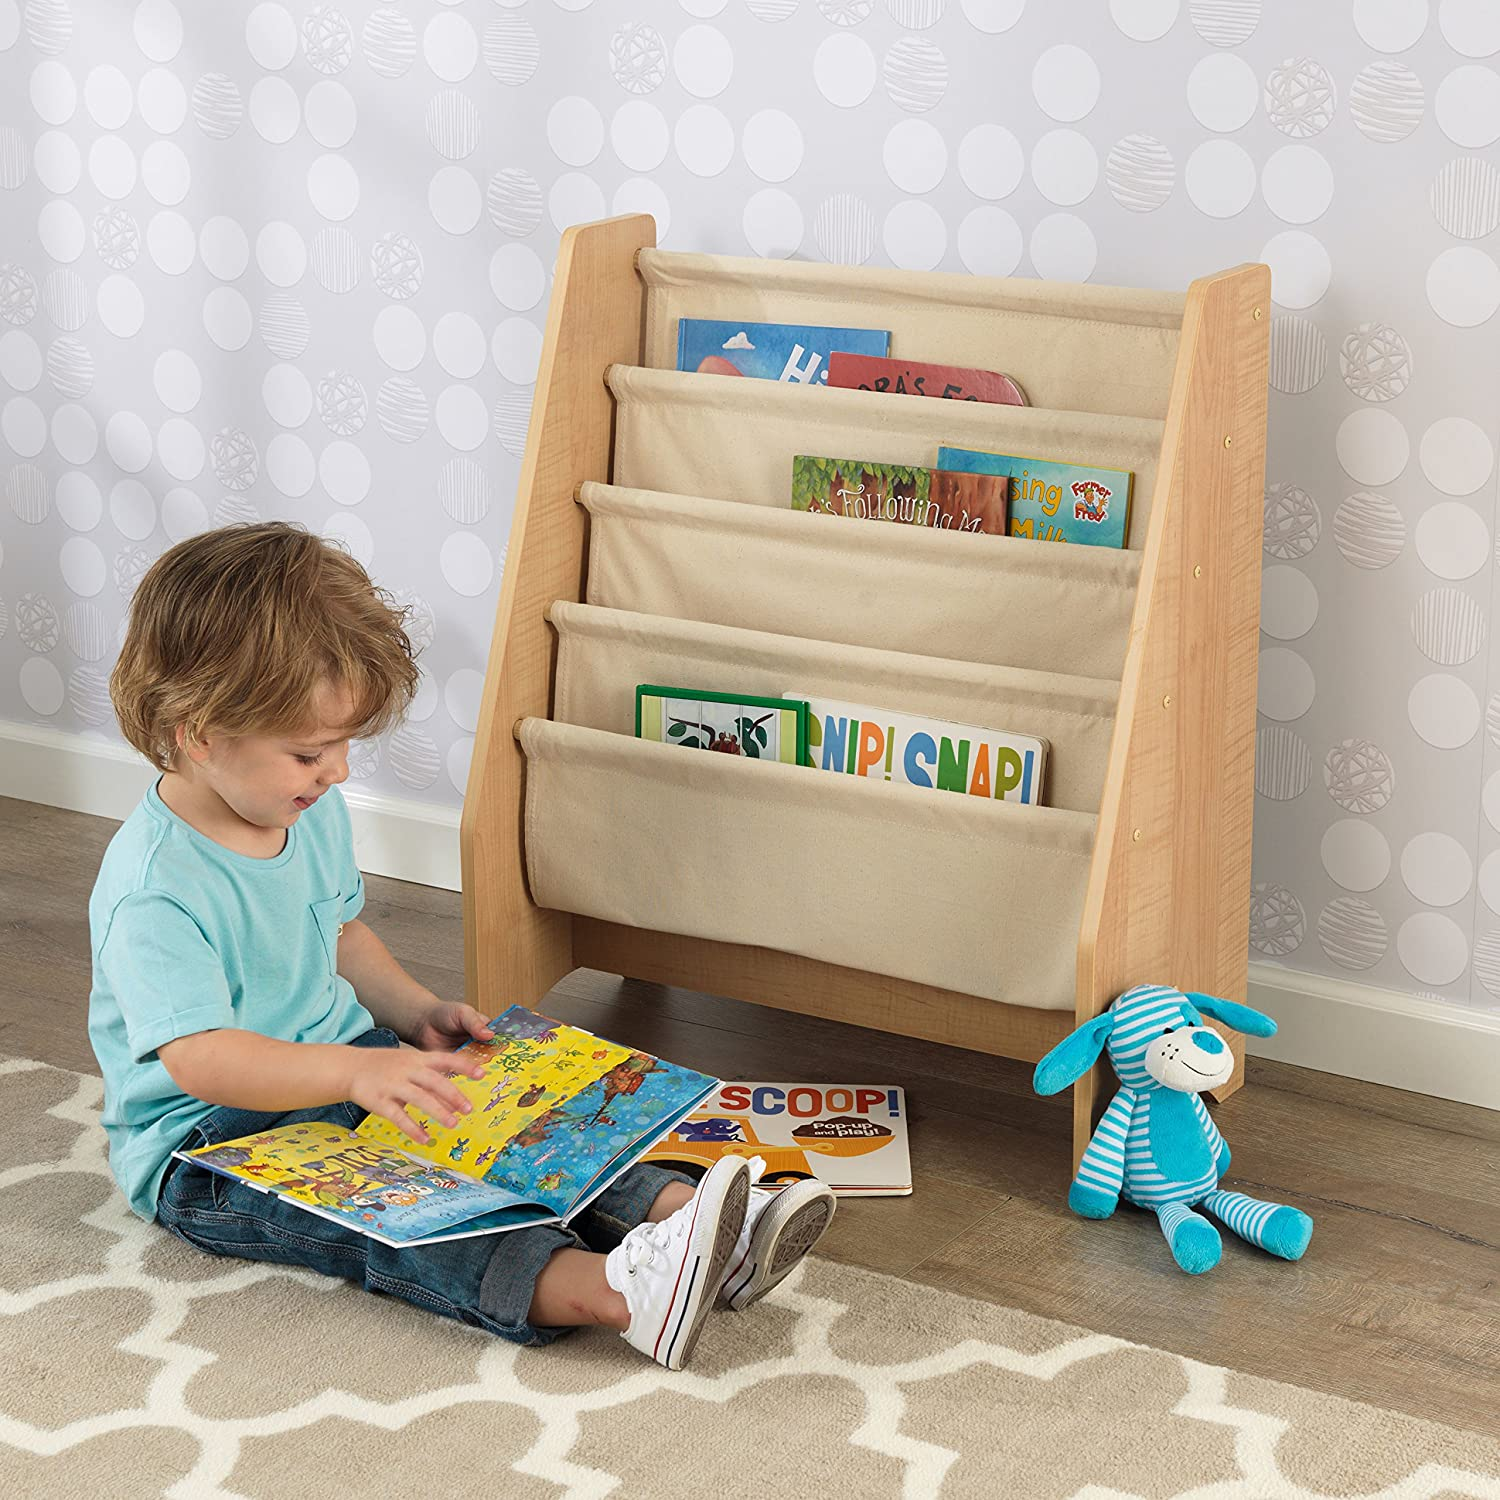 car online bookshelf livingroom childrens one season sling tiaras fascinating bookshelves ideas strolle colors games white furniture seat shelf shark canvas rain about toddlers for equipped walmart baby rails sheets with toddler songs bookcase grey kids boots and cool xbox